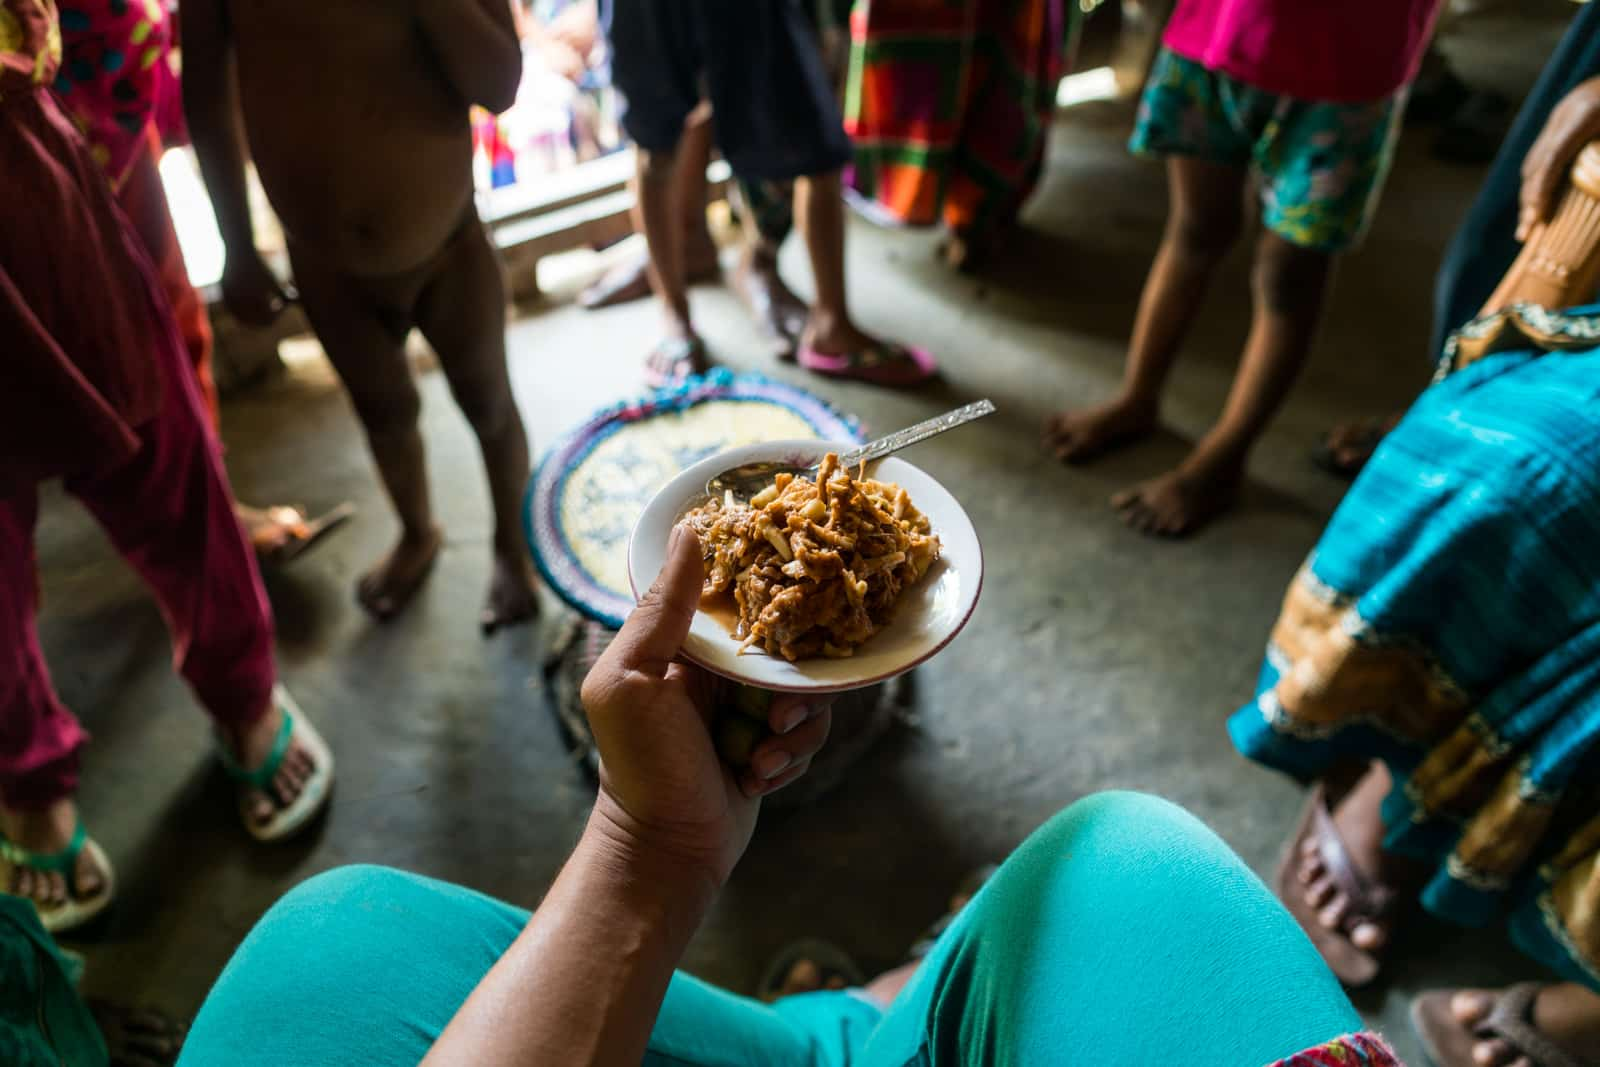 Guide to female travel in Bangladesh - Invited into a house for snacks and selfies on Nijhum Dwip - Lost With Purpose travel blog